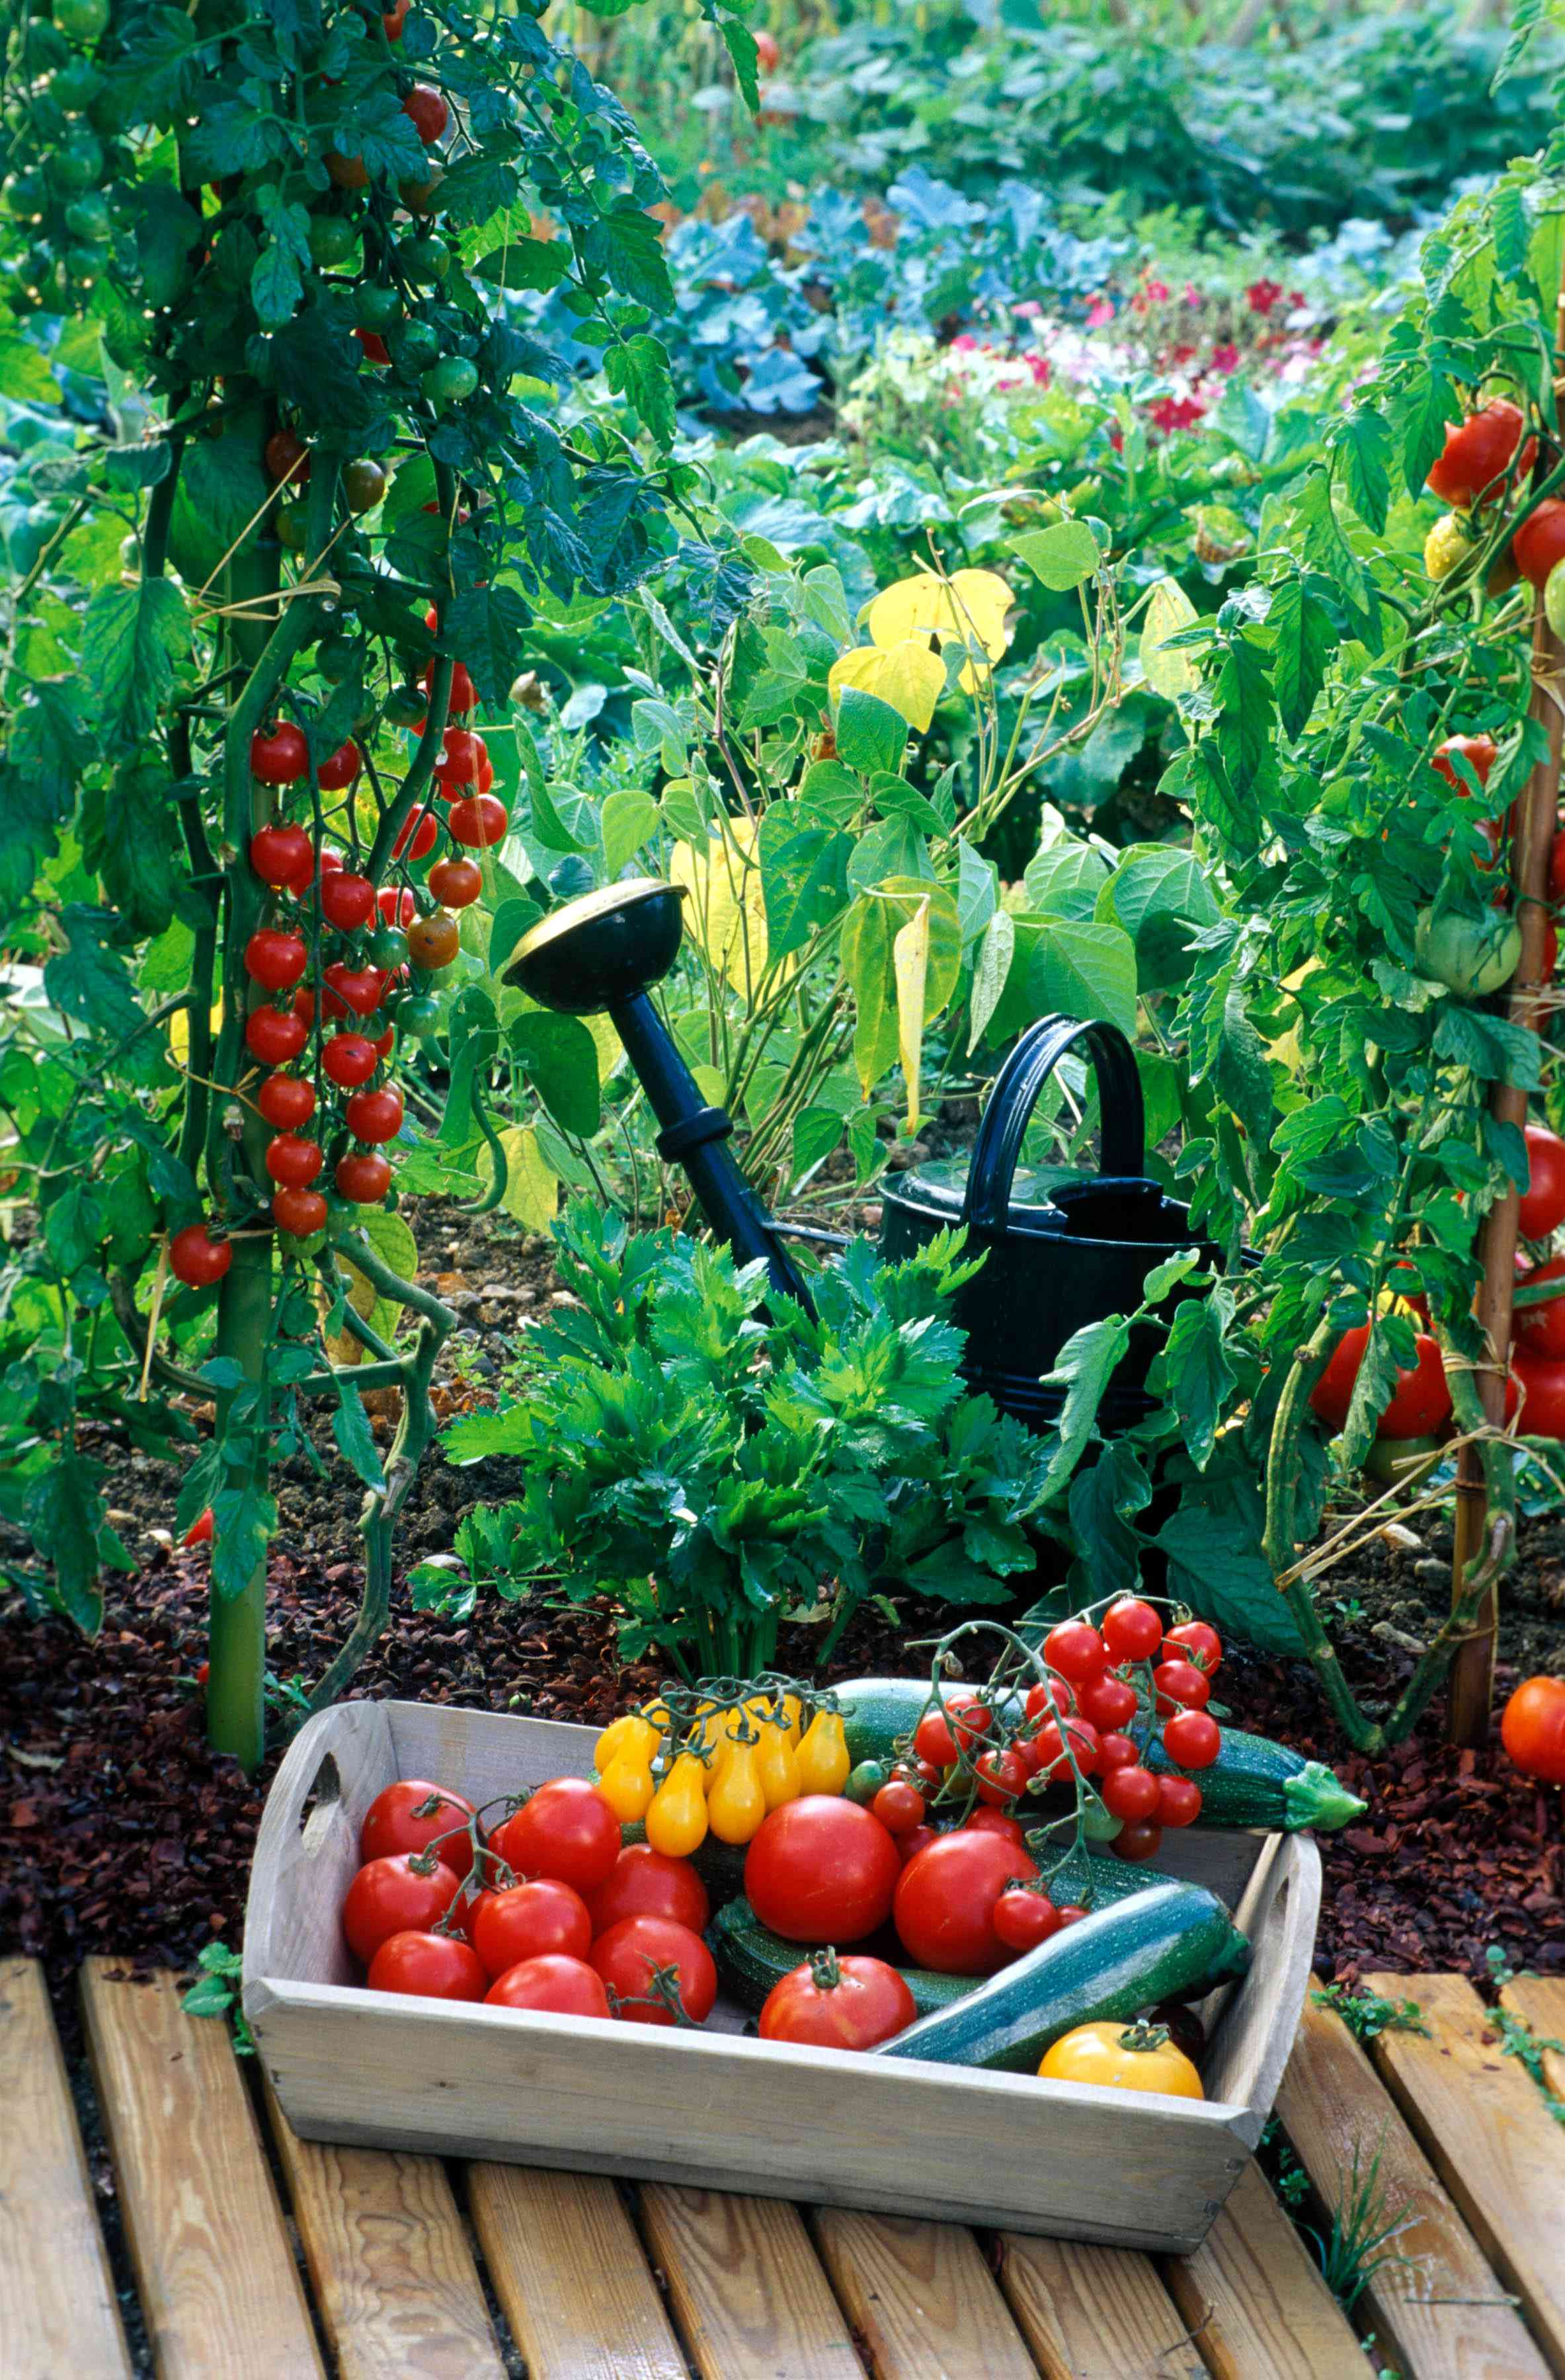 basket of red and yellow tomatoes on patio with garden and watering can in background